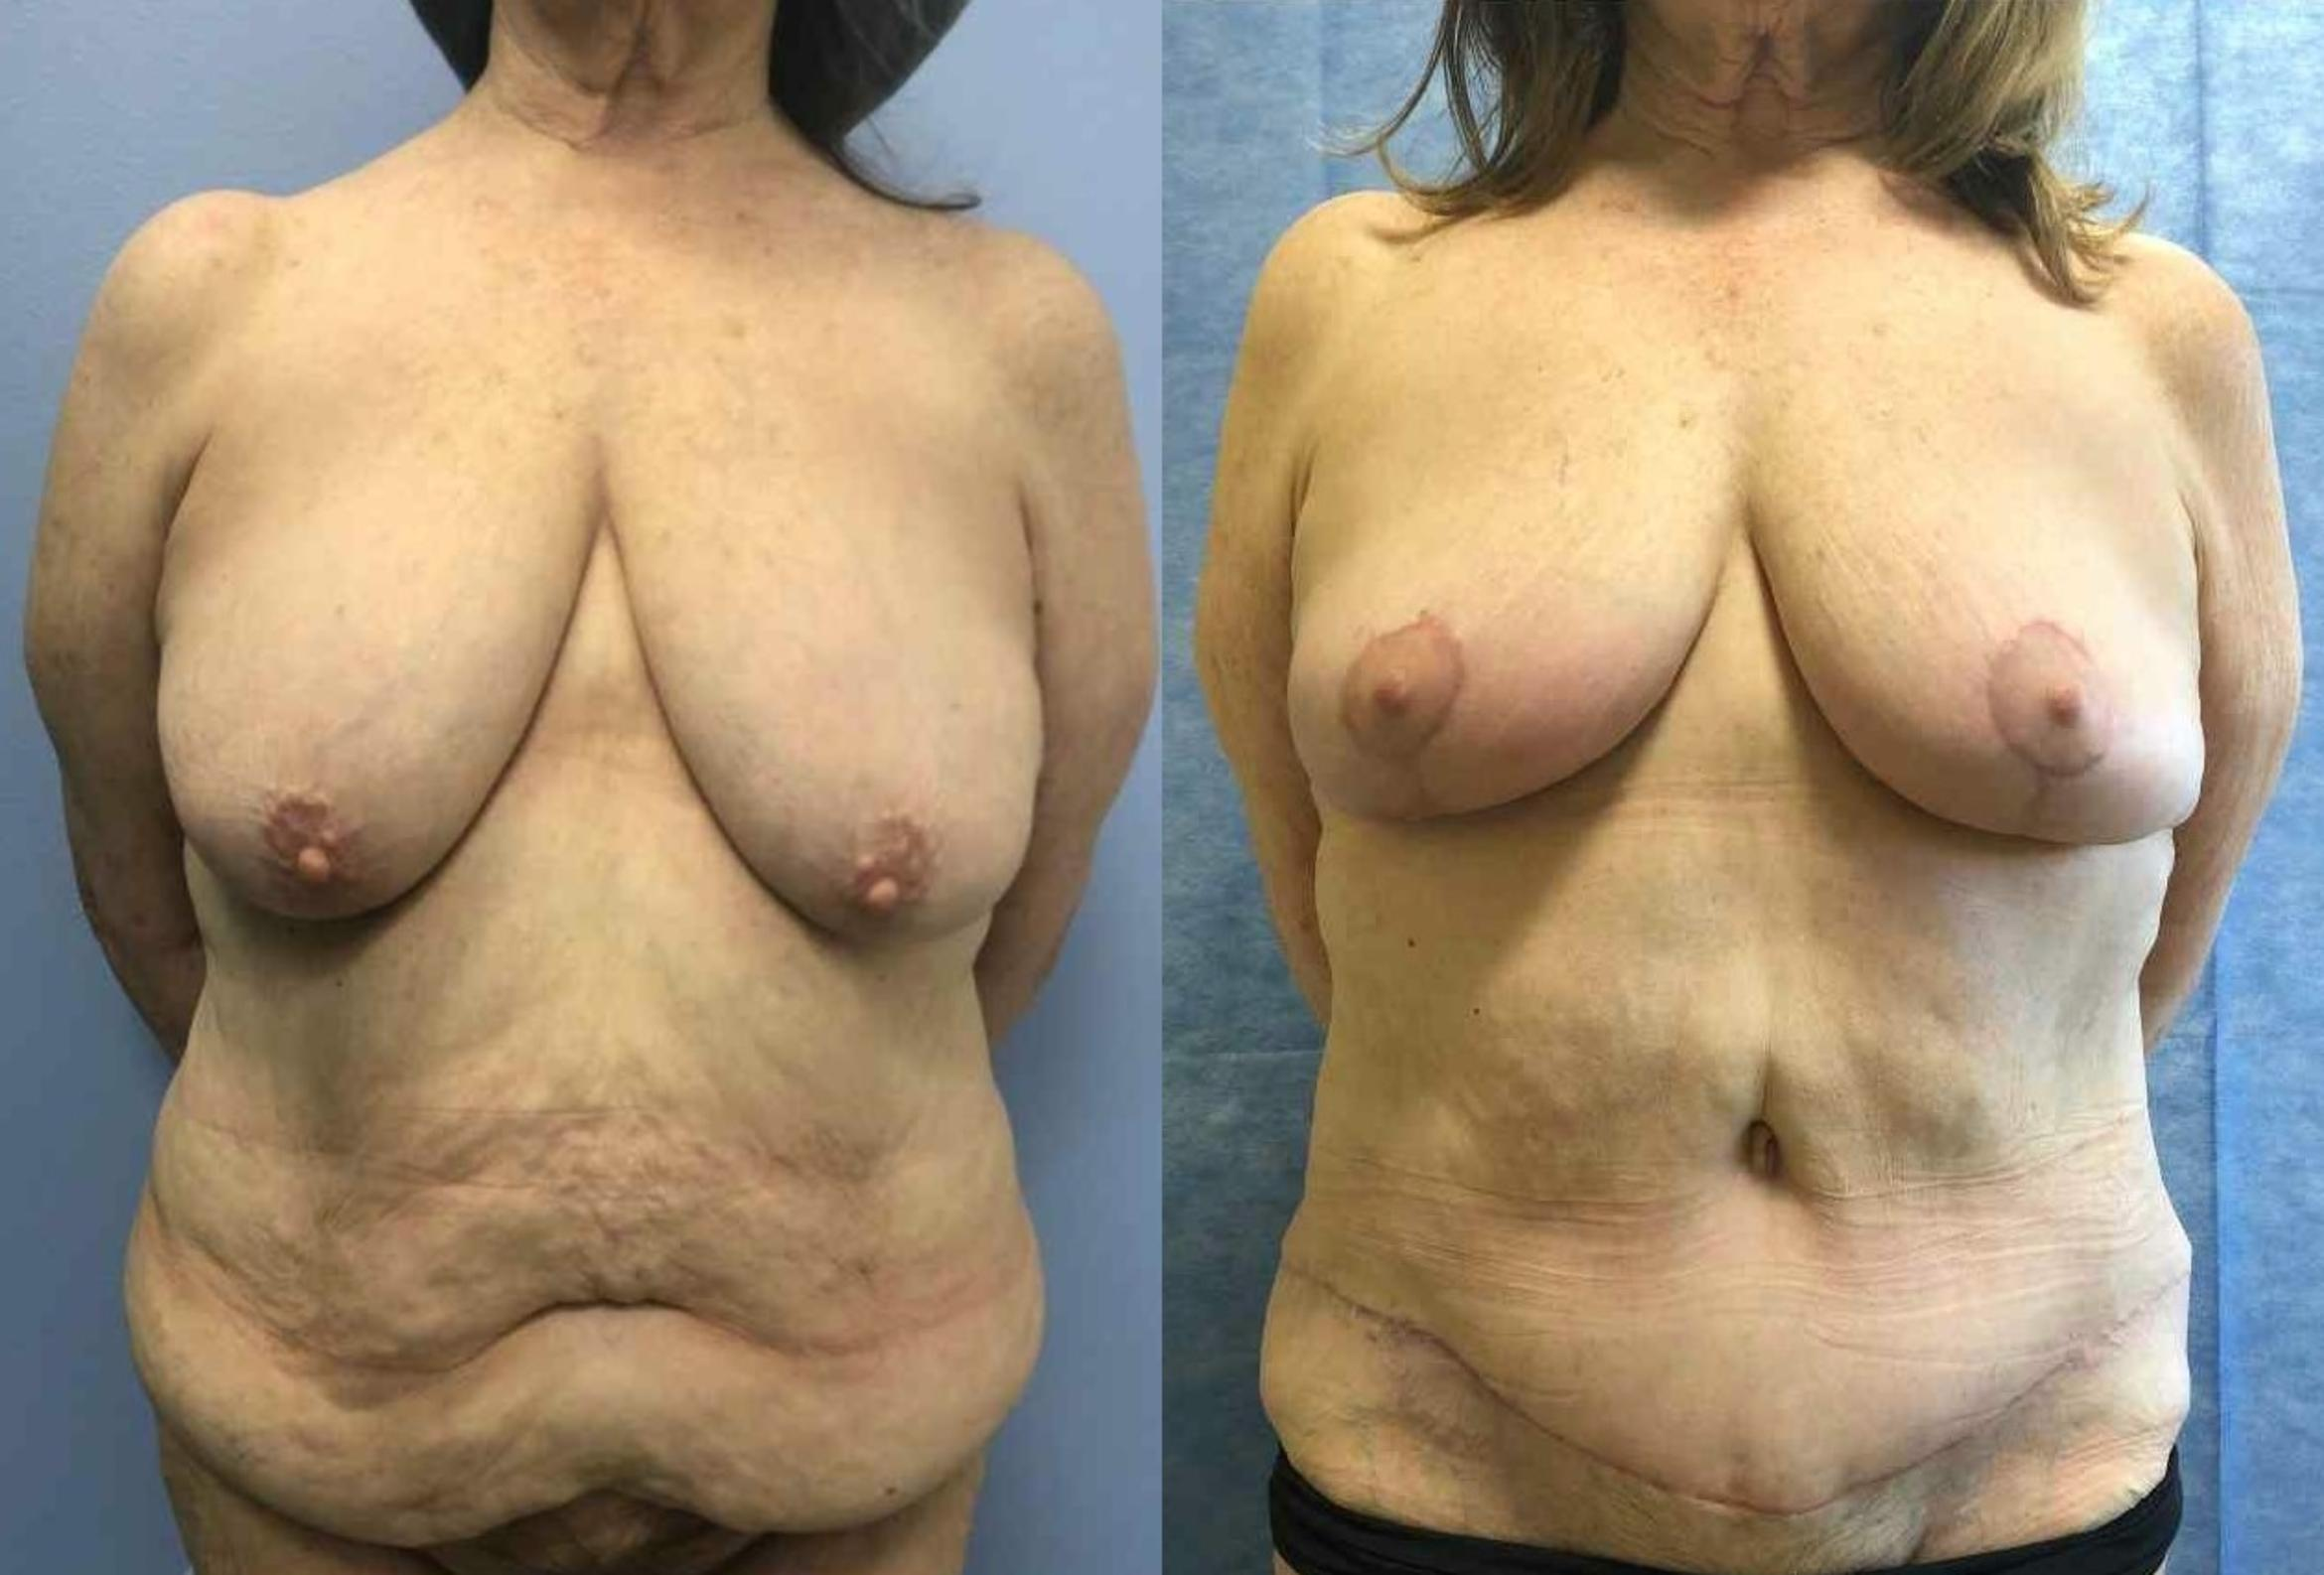 Breast Reduction Before & After Photo | San Francisco, CA | Kaiser Permanente Cosmetic Services